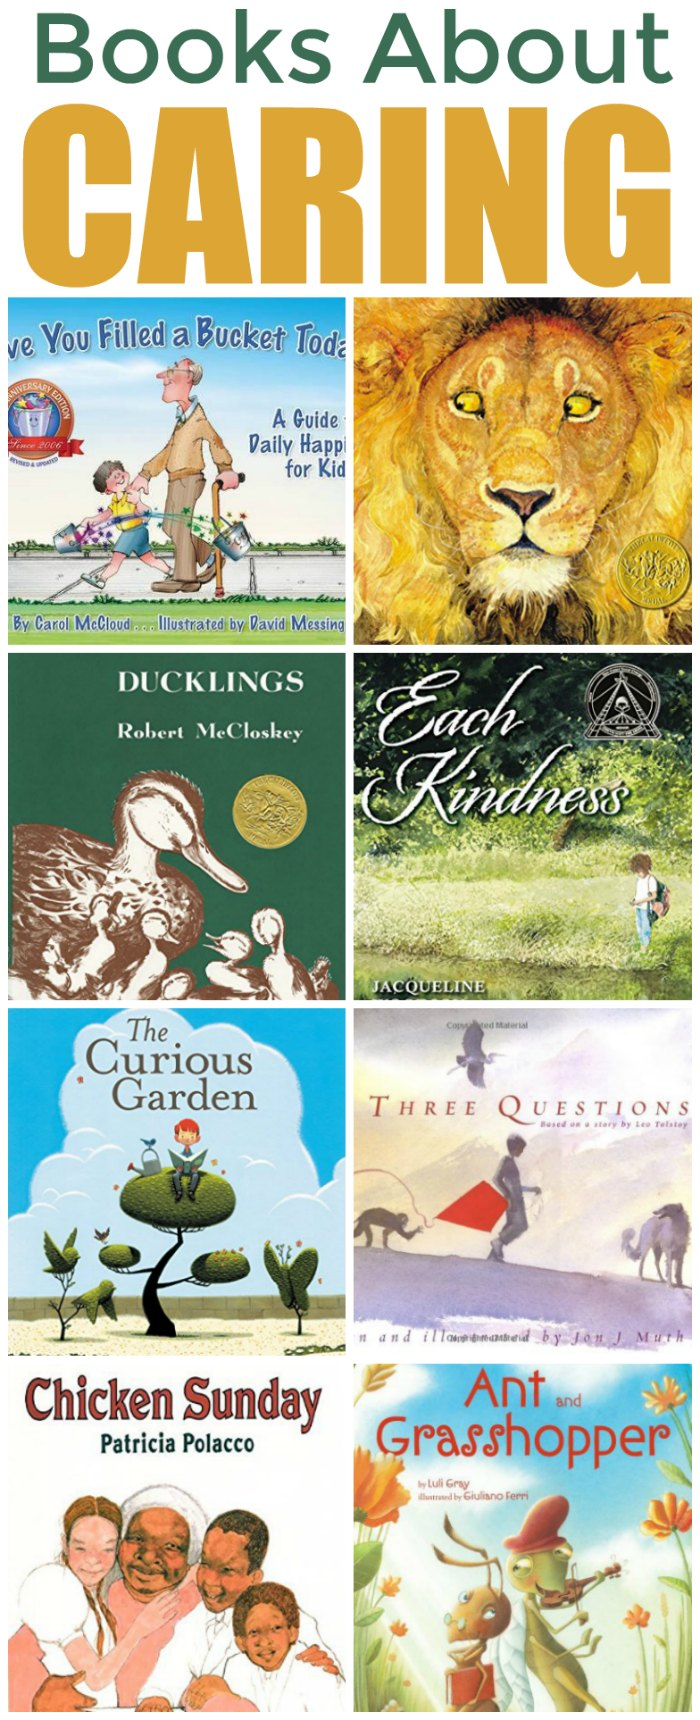 Teaching Children to Care with Books - Children's books About Caring | Mommy Evolution #reading